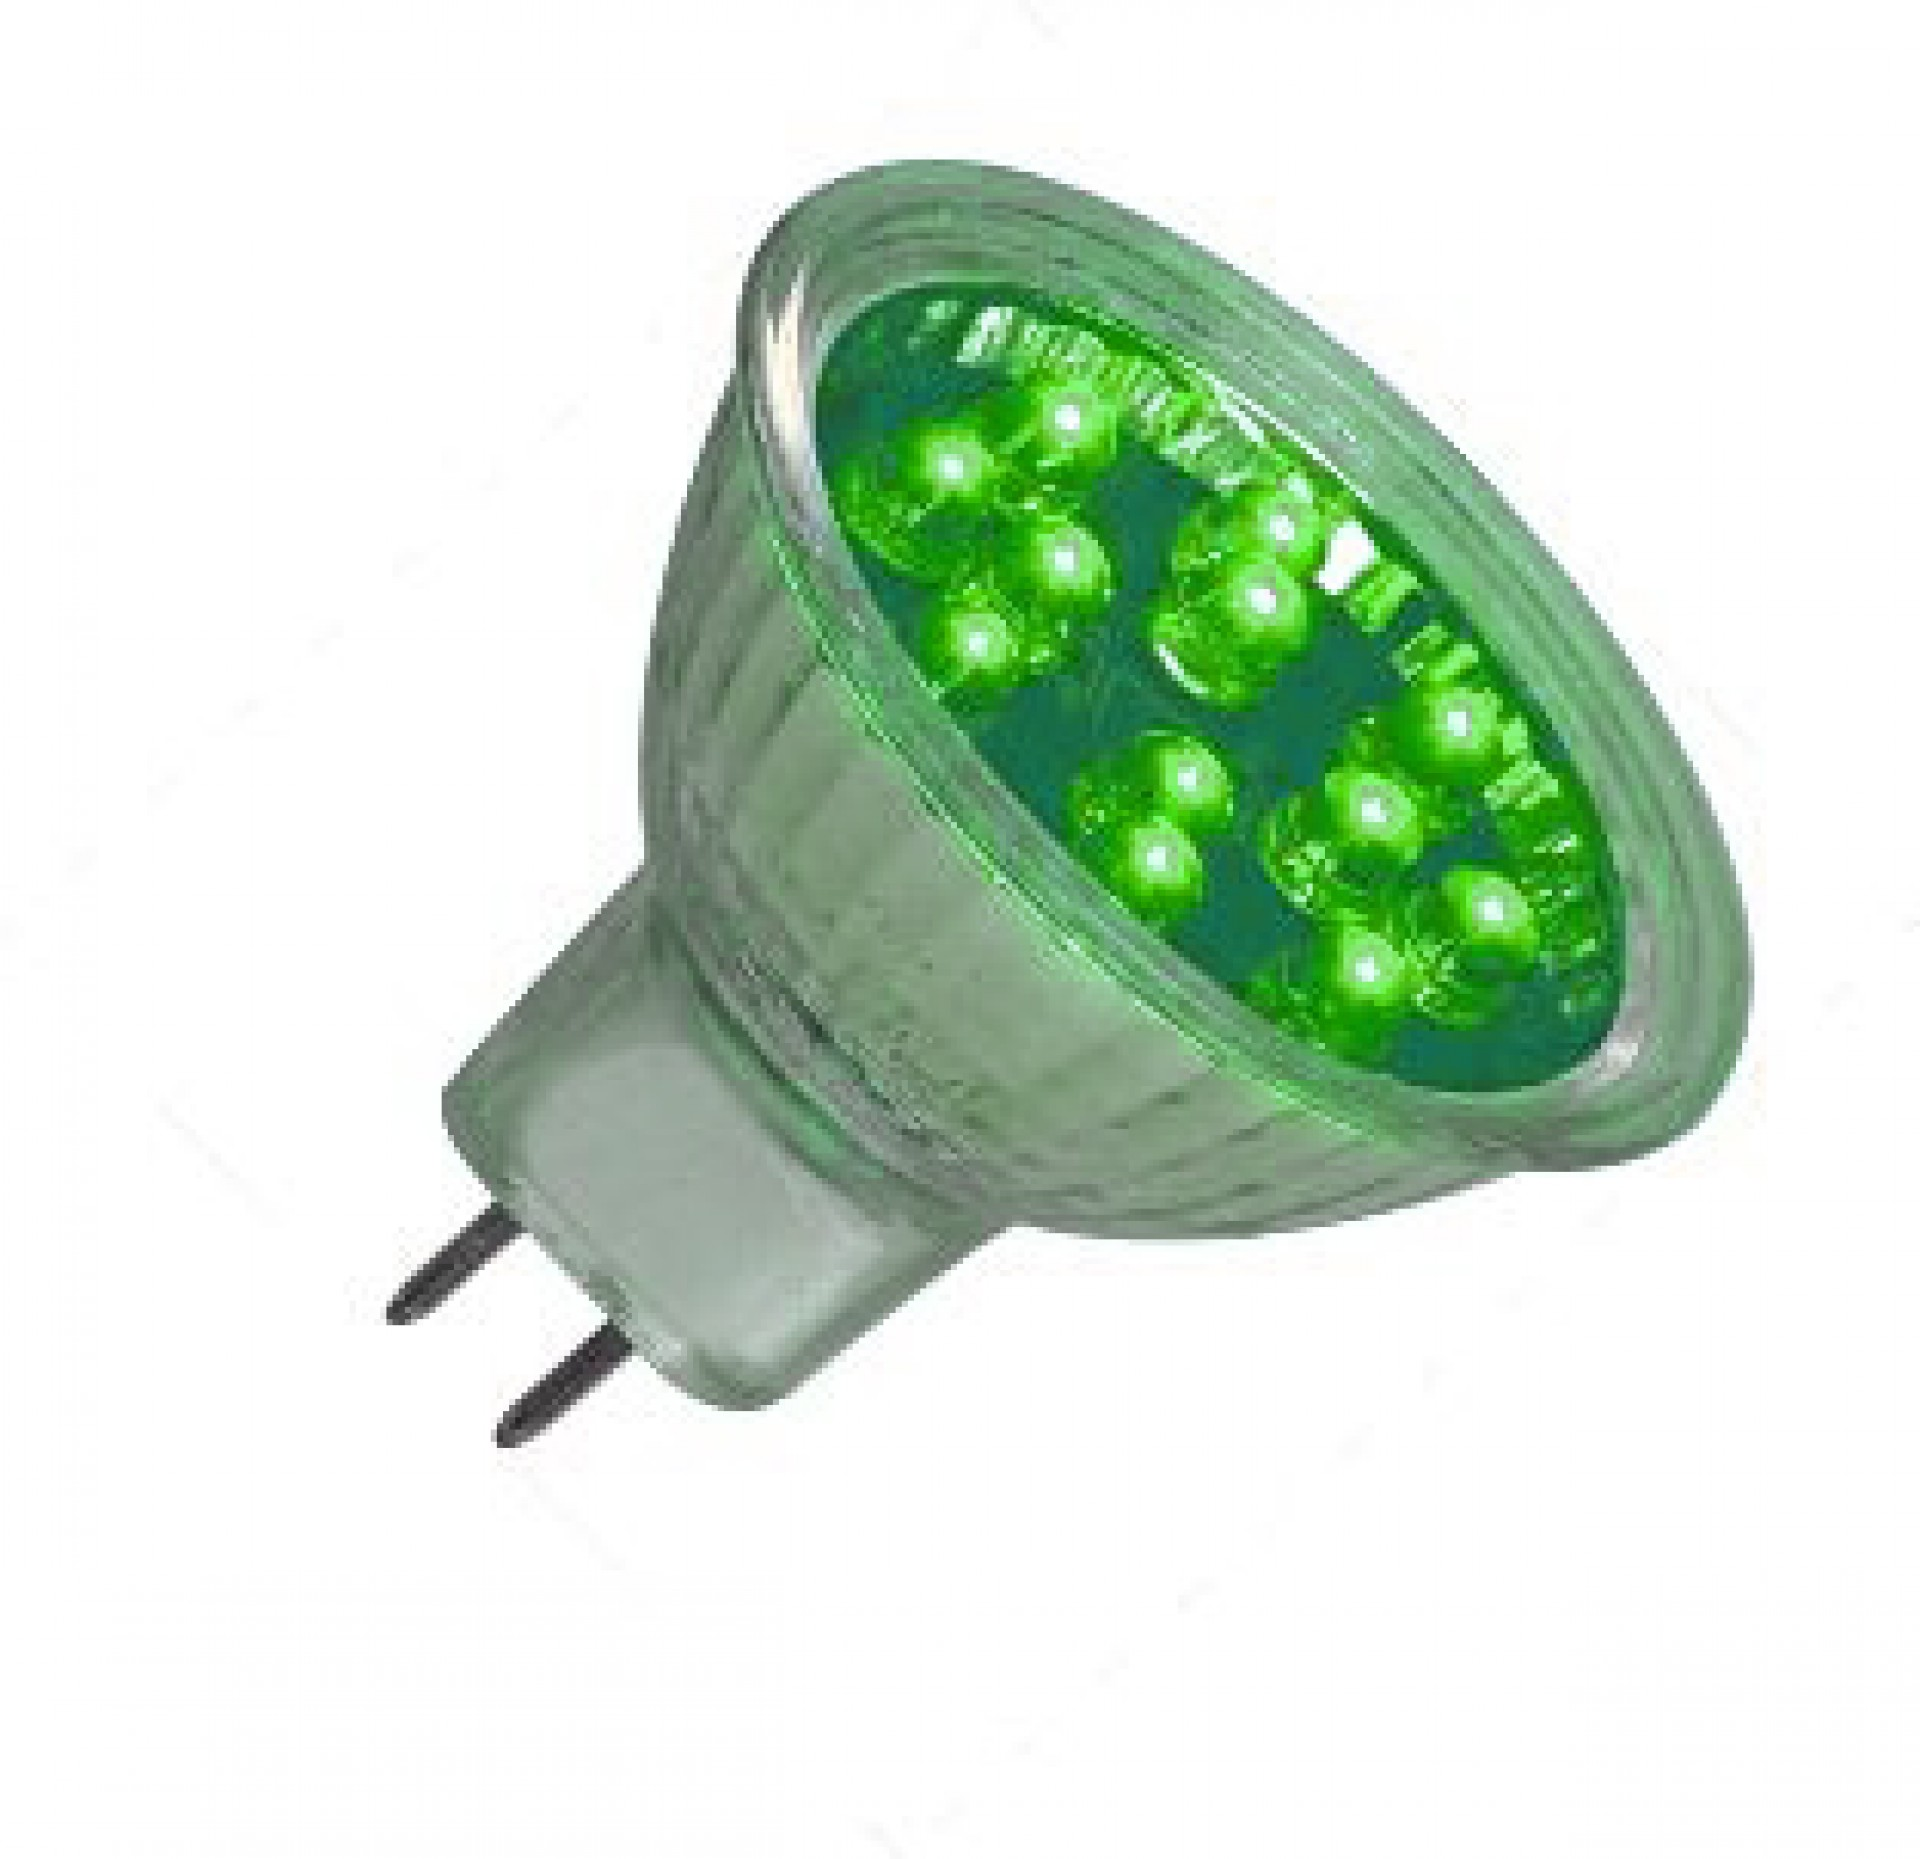 INVISION SP MR16 18 Green